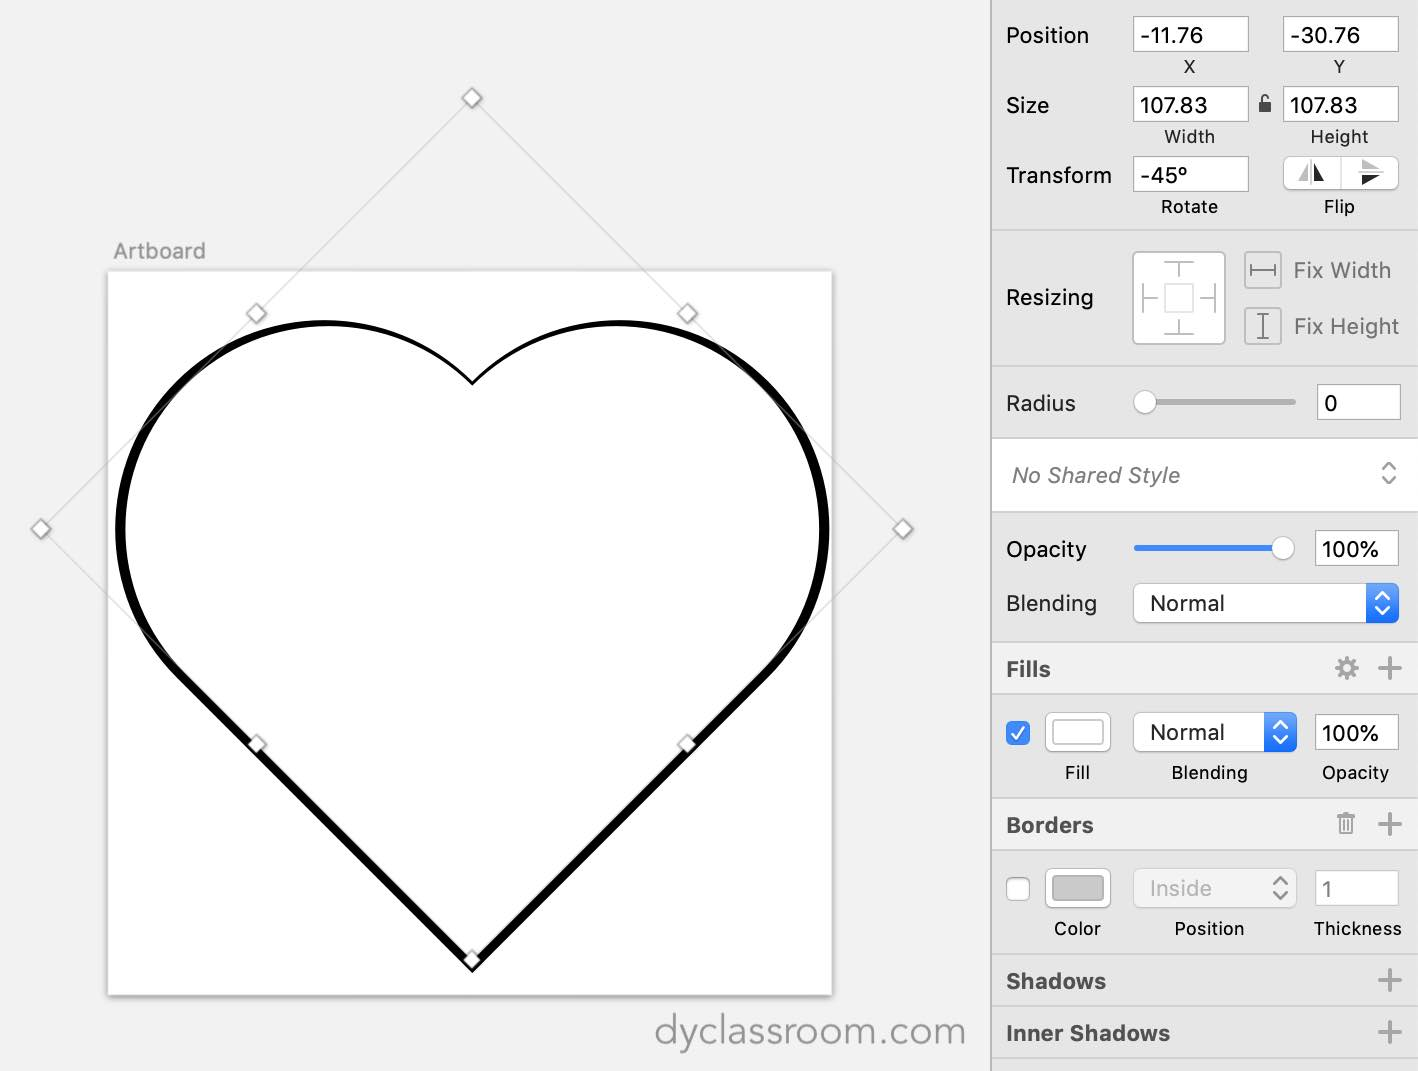 sketch app - heart icon